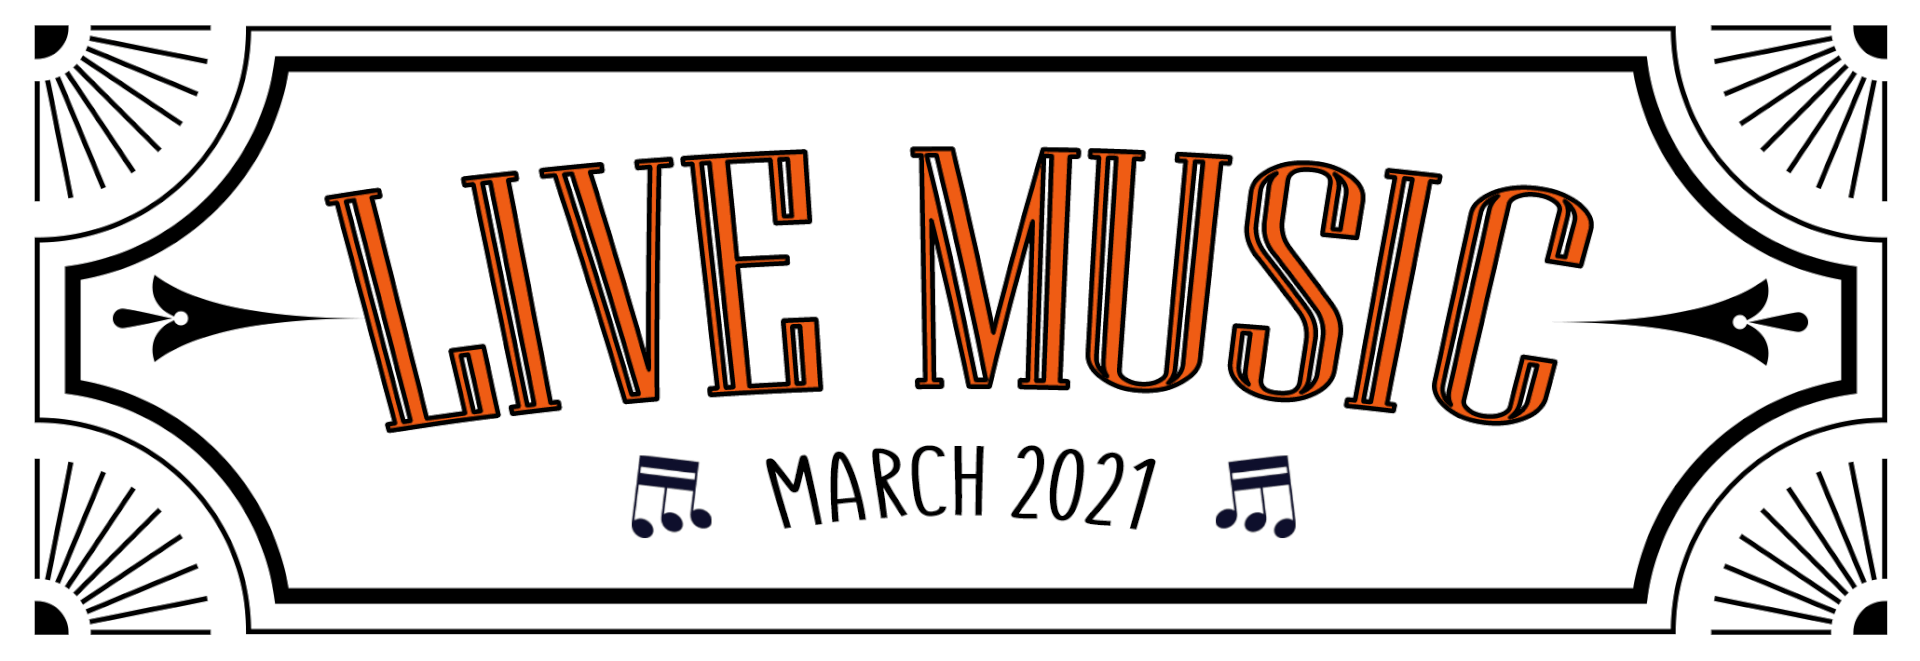 Live music web banner-march